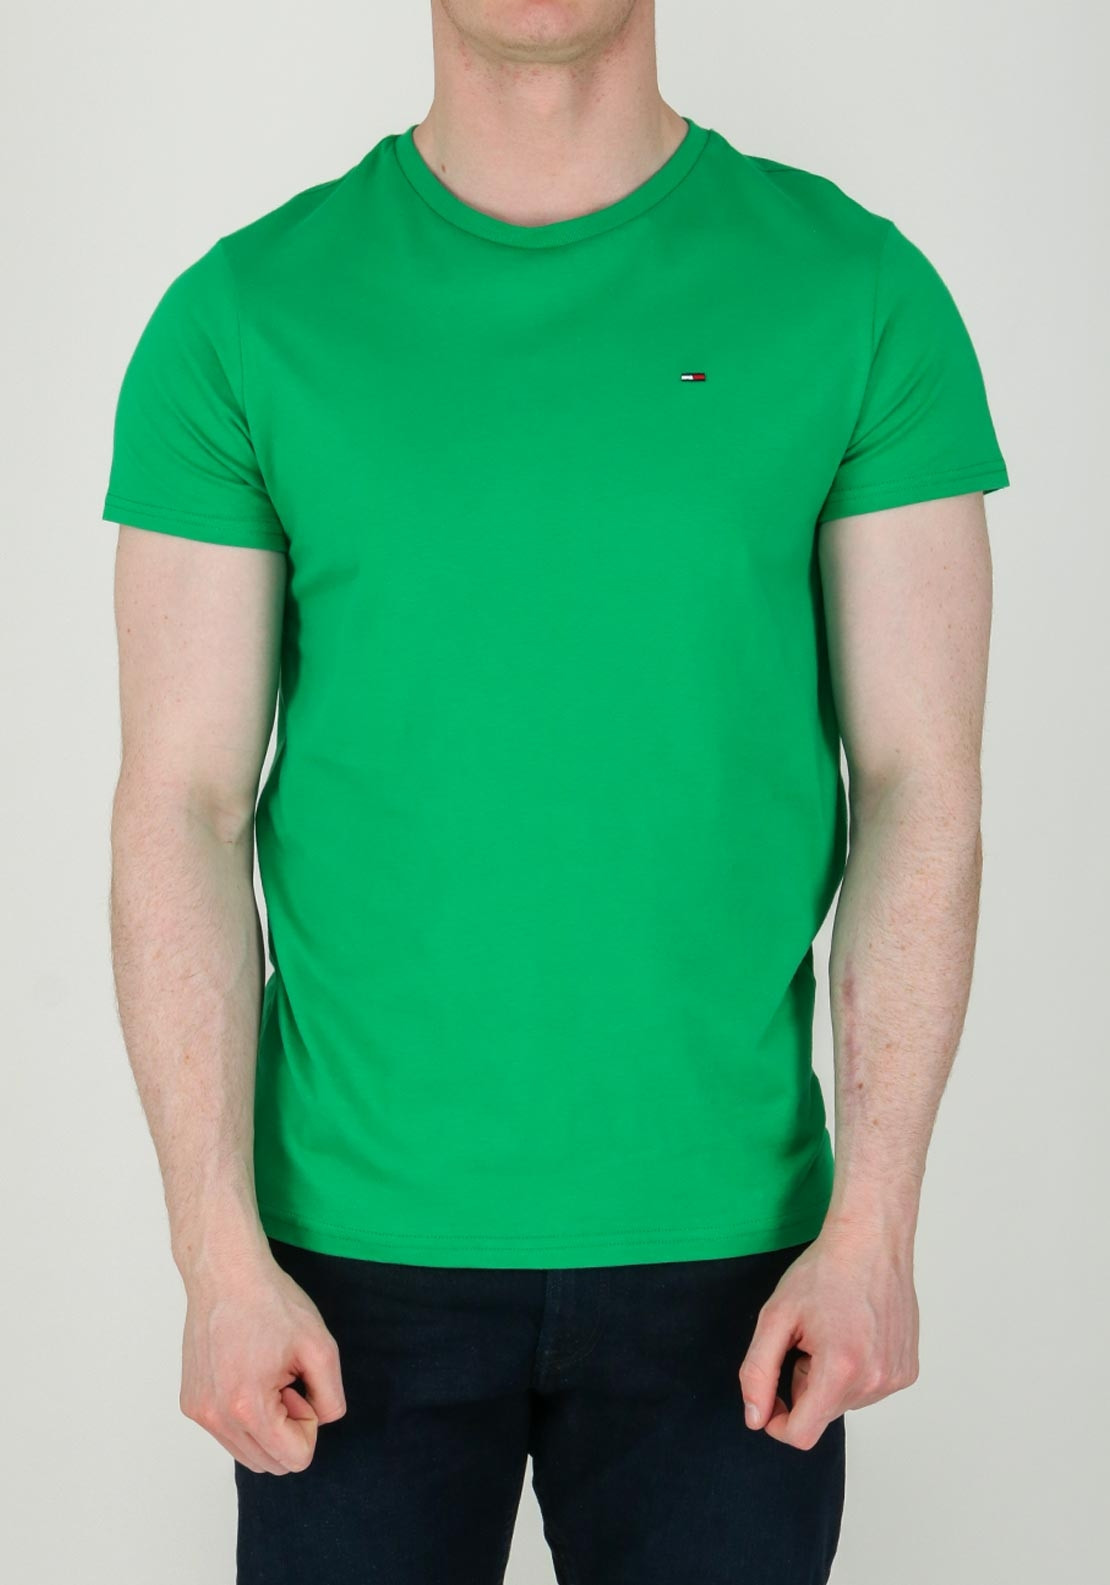 Tommy Jeans Men's Essential T-Shirt, Bright Green